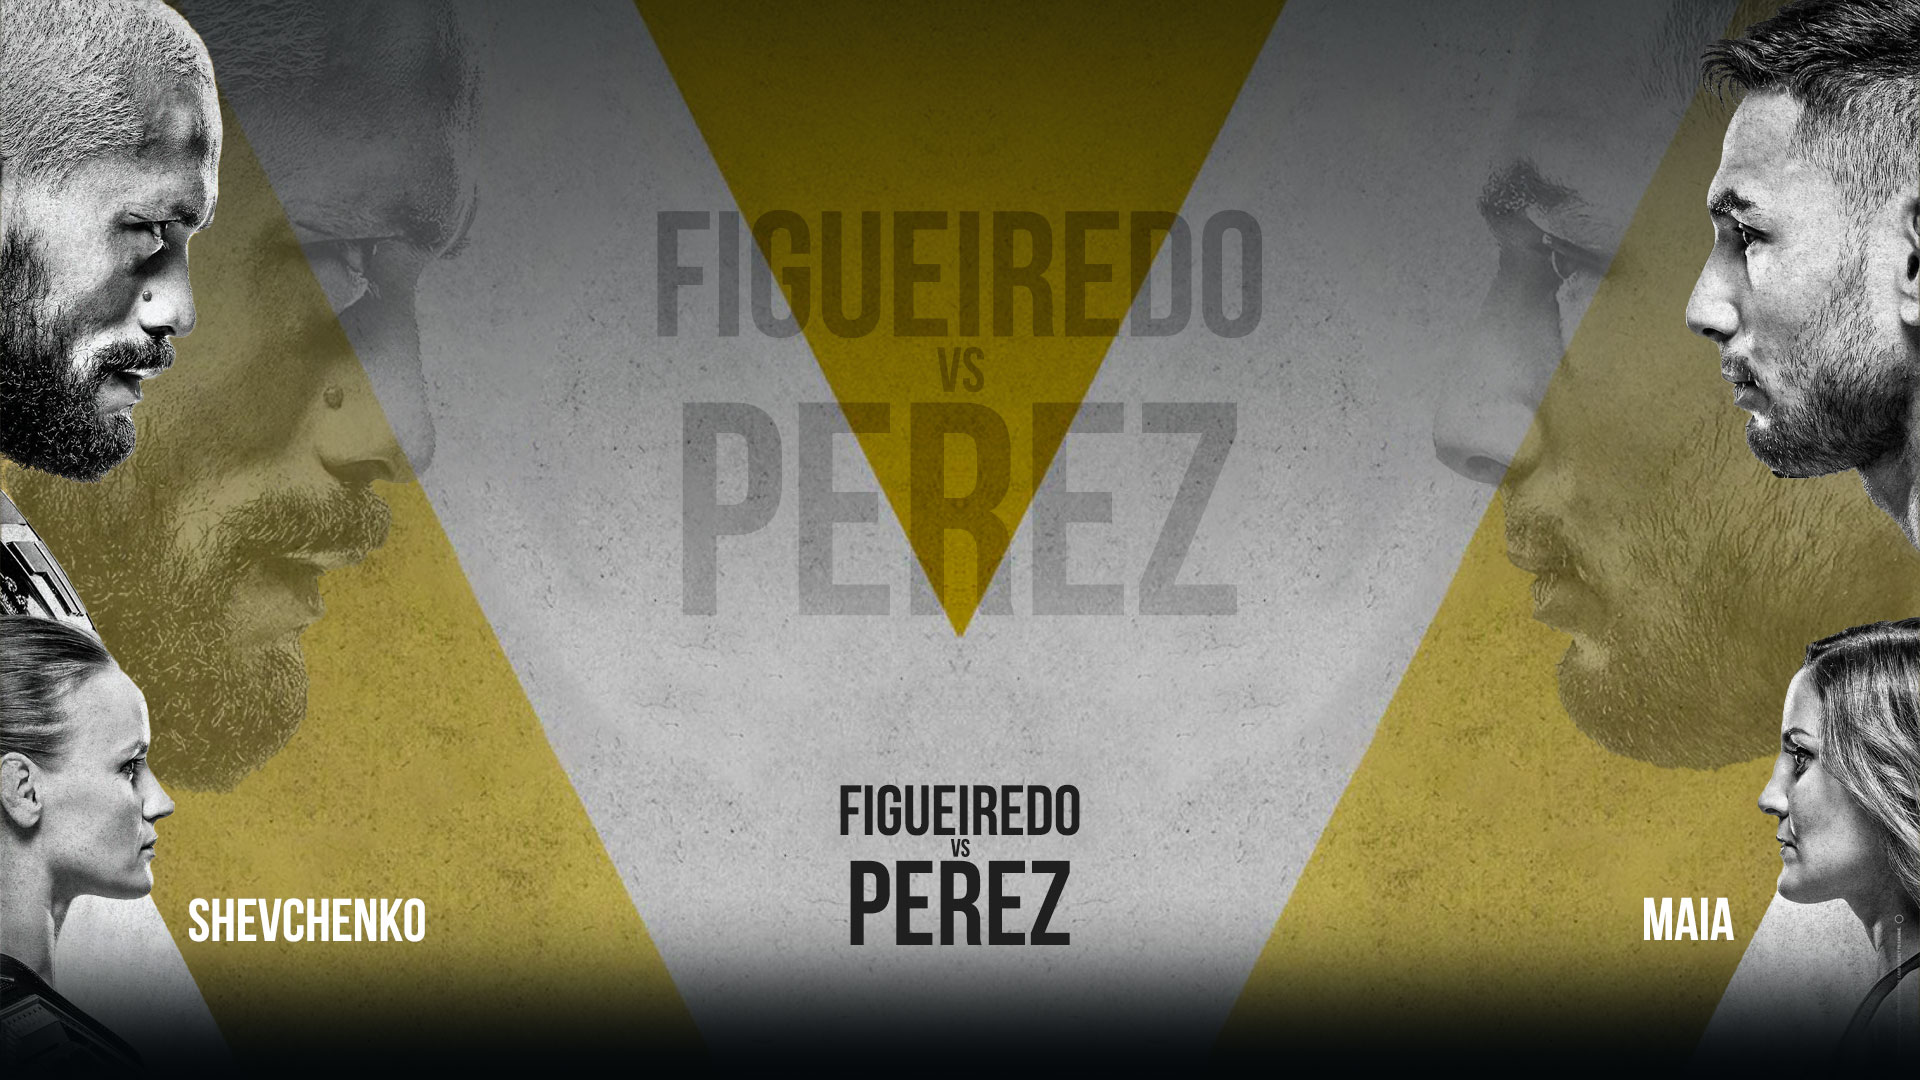 Ufc 255 Live Stream Free On Reddit Watch Figueiredo Vs Perez Ppv Fight Live Tonight Programming Insider